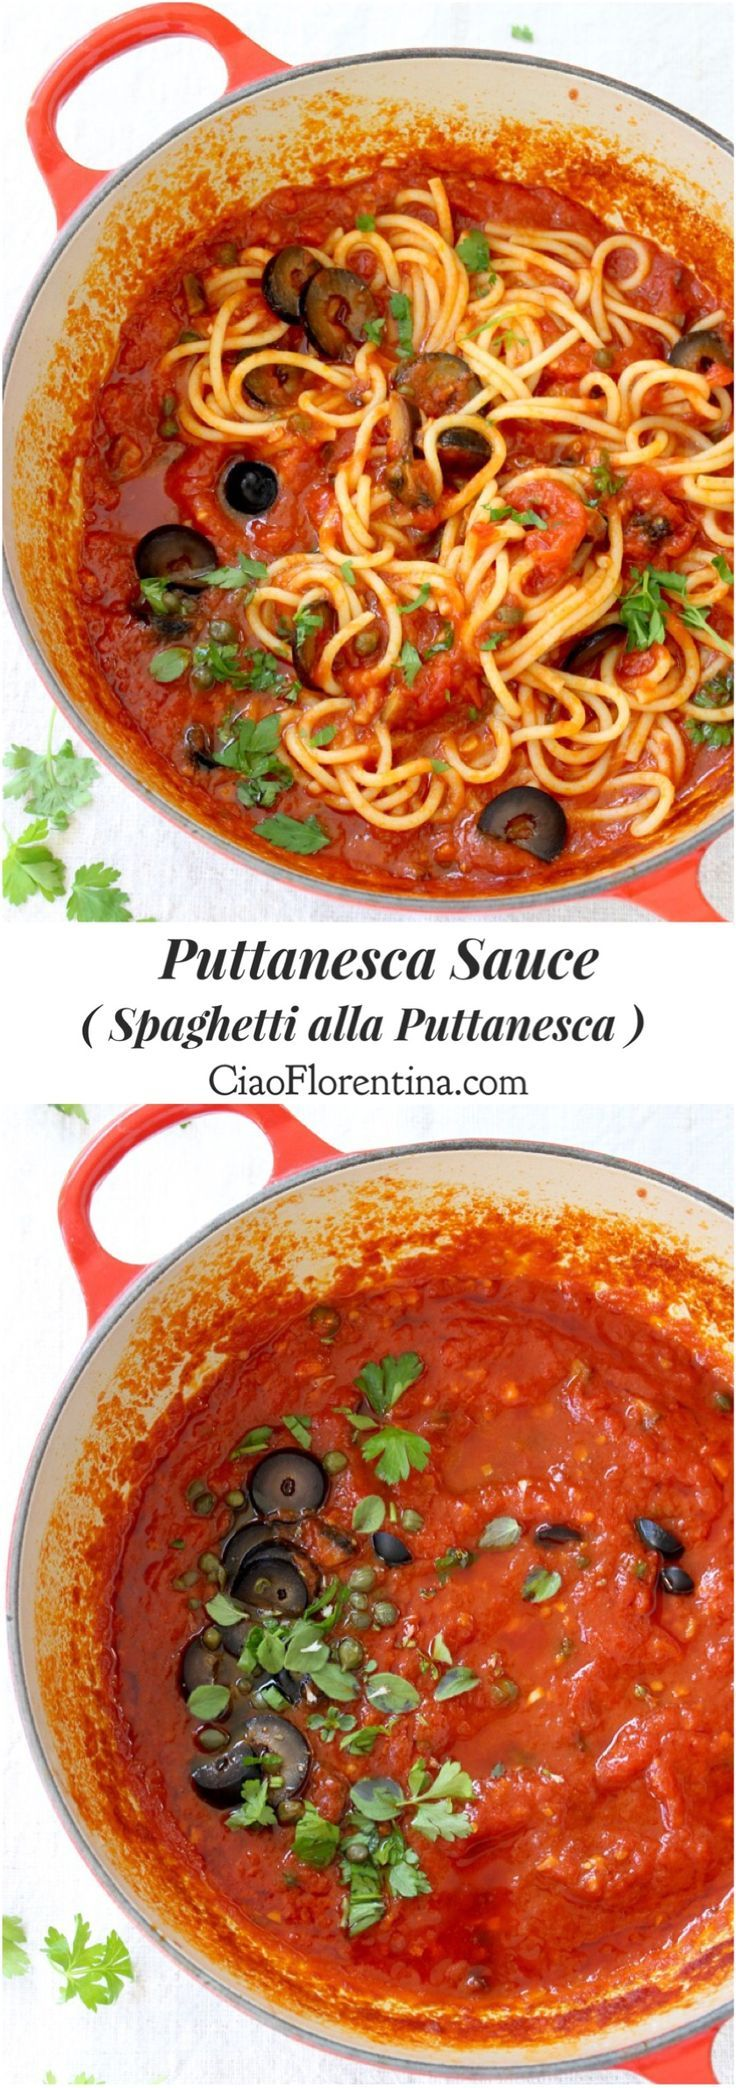 560 best wog food images on pinterest cooking recipes yummy food puttanesca sauce recipe spaghetti alla puttanesca forumfinder Images